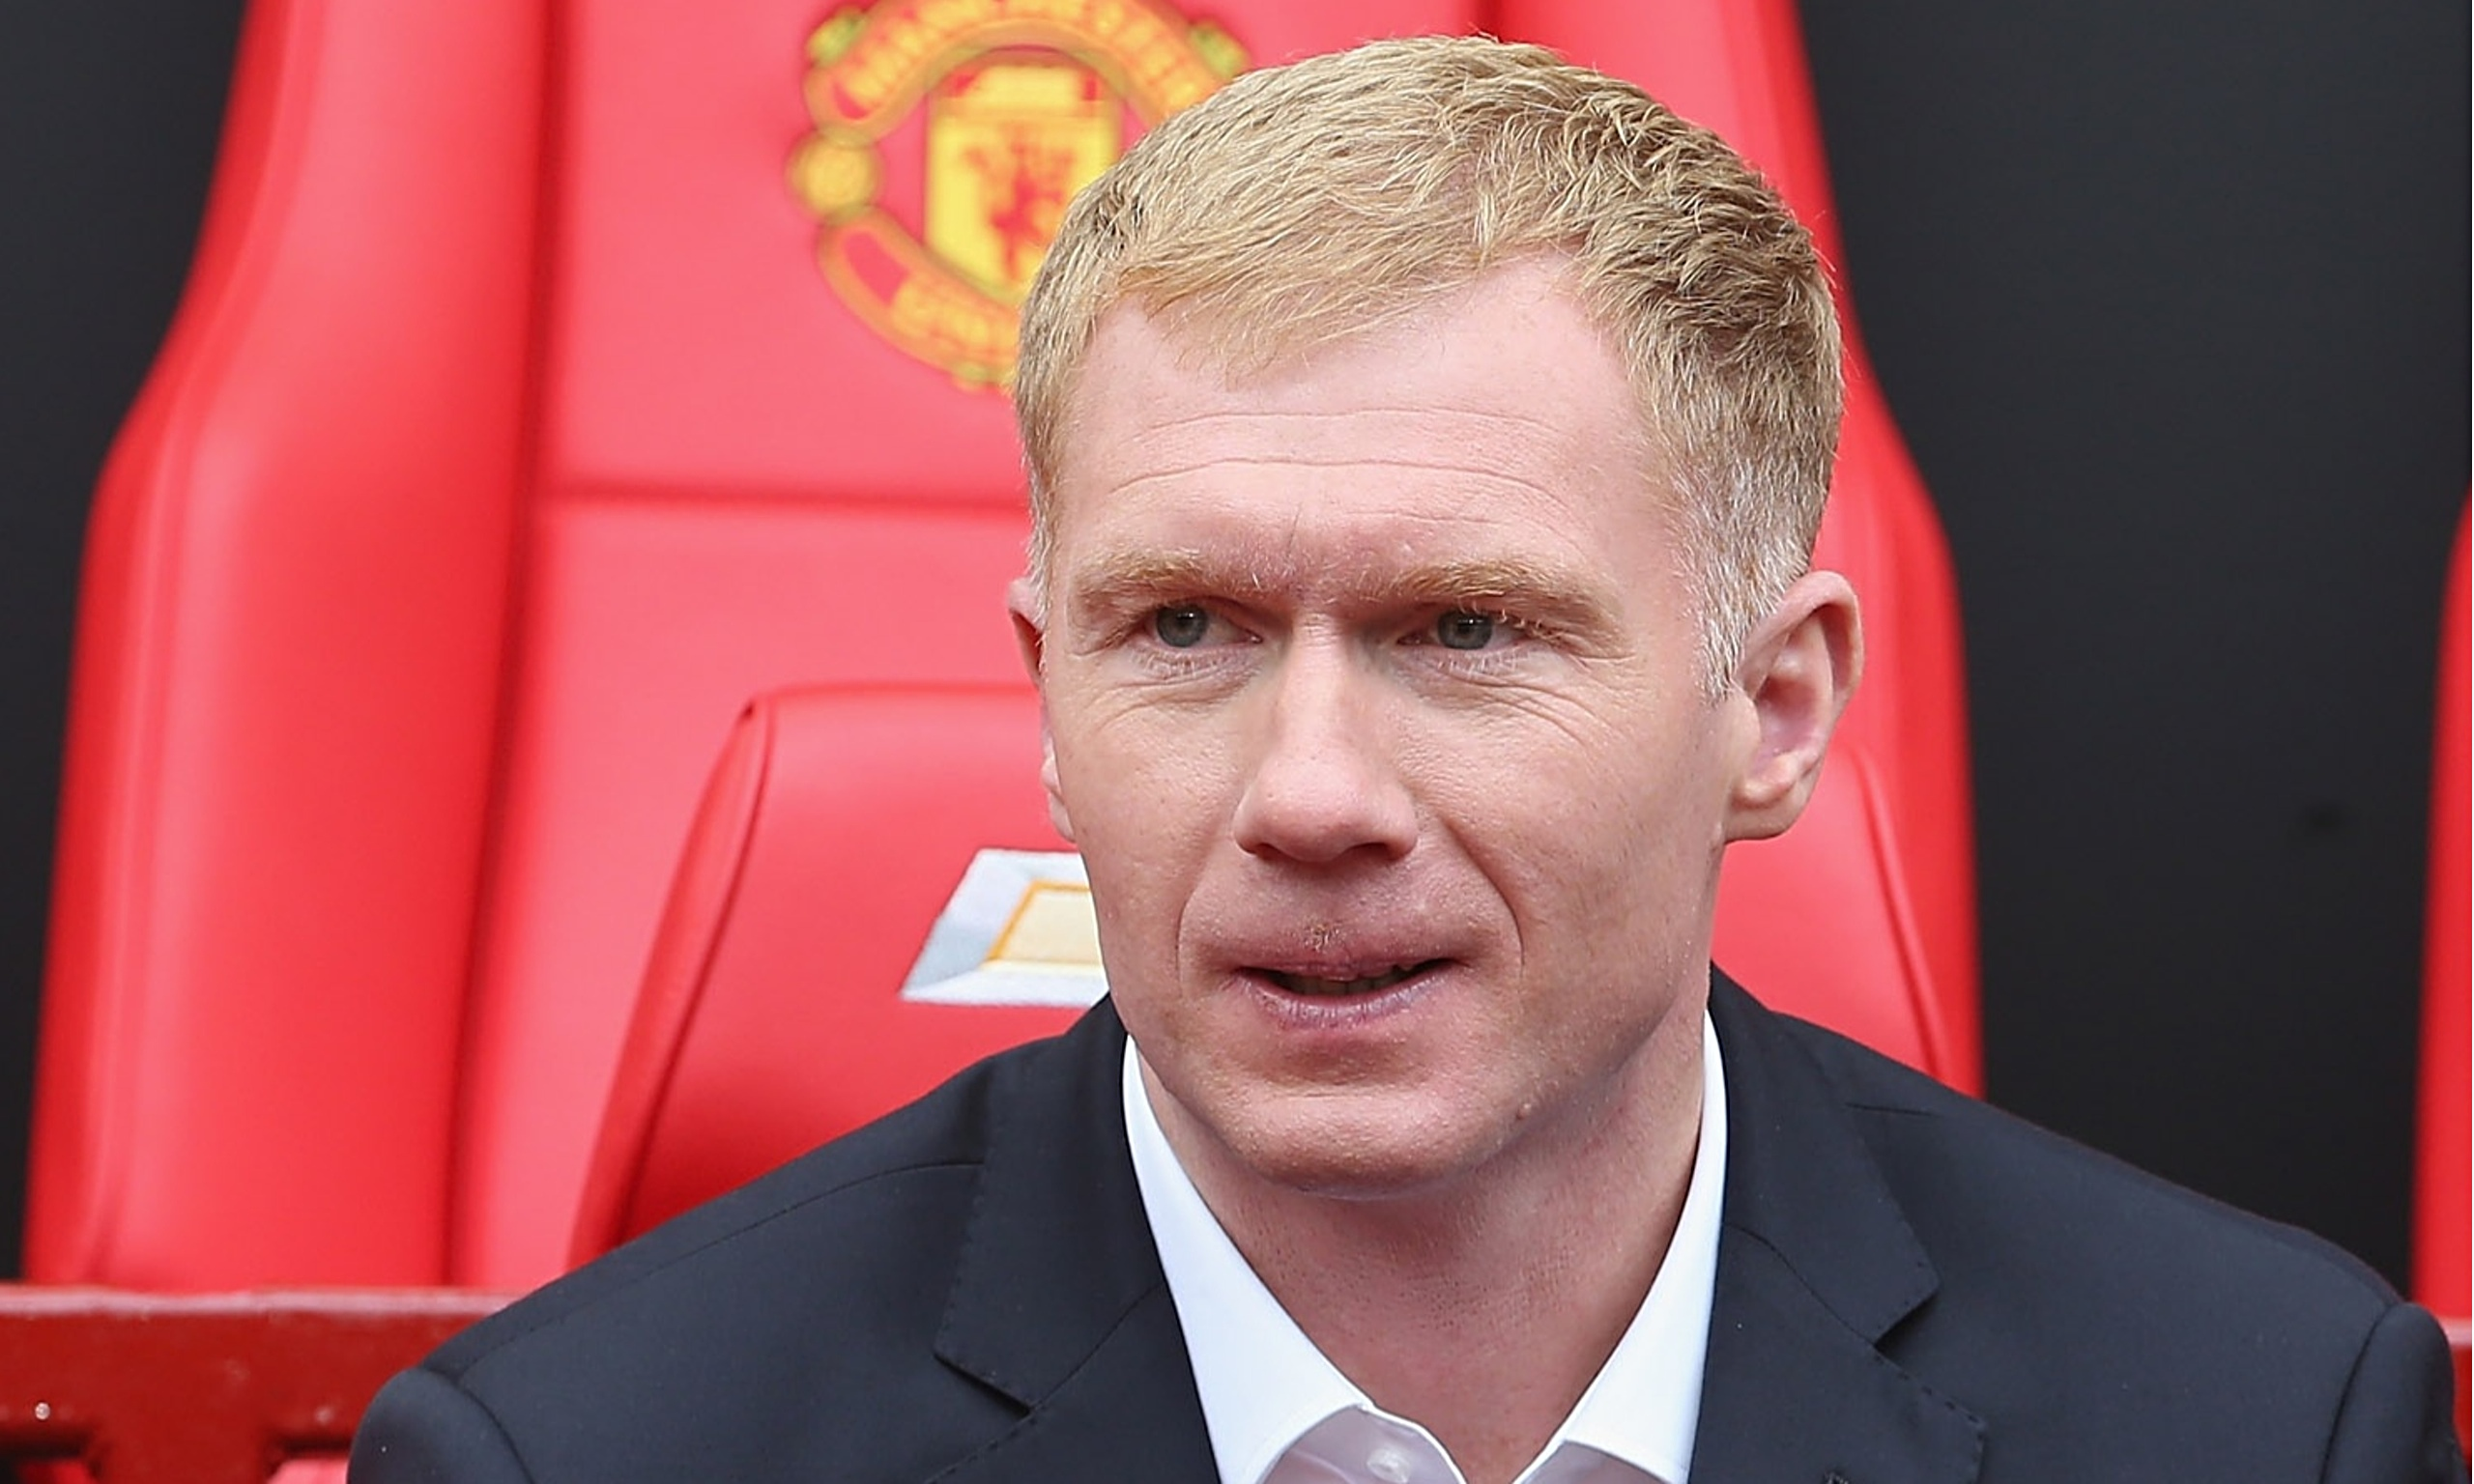 Paul Scholes: Paul Scholes 'scared' That Manchester United Are Heading